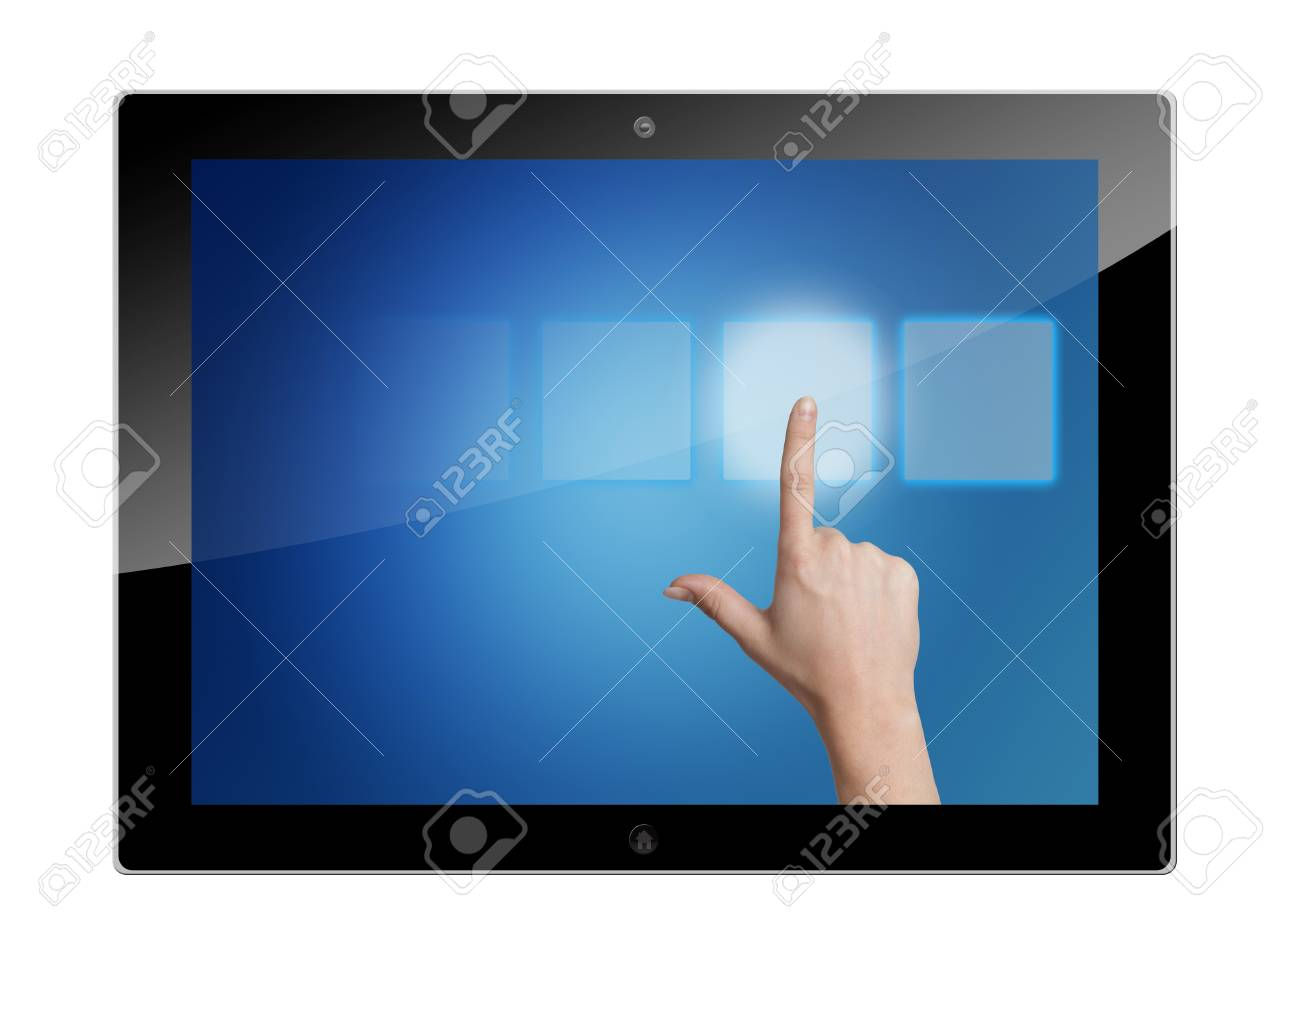 tablet pc with hand pressing a touchscreen button on blue background Stock Photo - 19804490